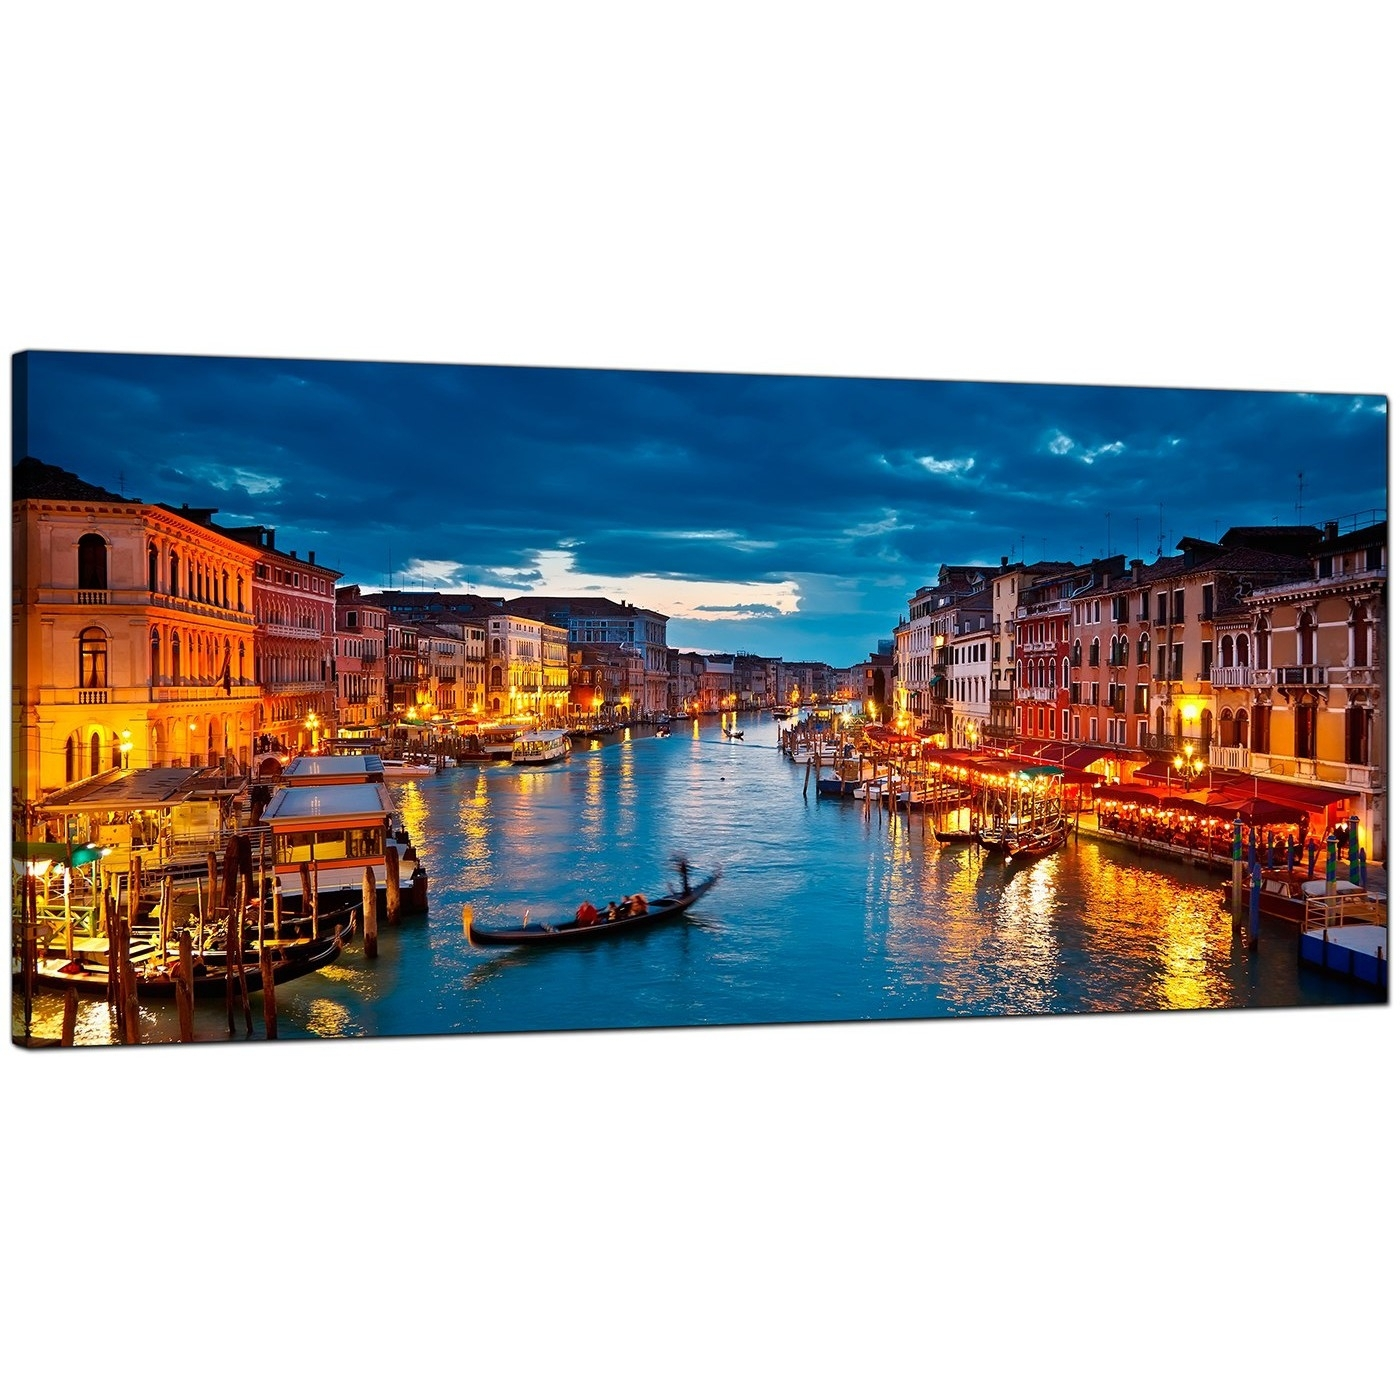 Cheap Canvas Prints Of Venice Italy For Your Living Room With Regard To Latest Italy Canvas Wall Art (Gallery 3 of 15)